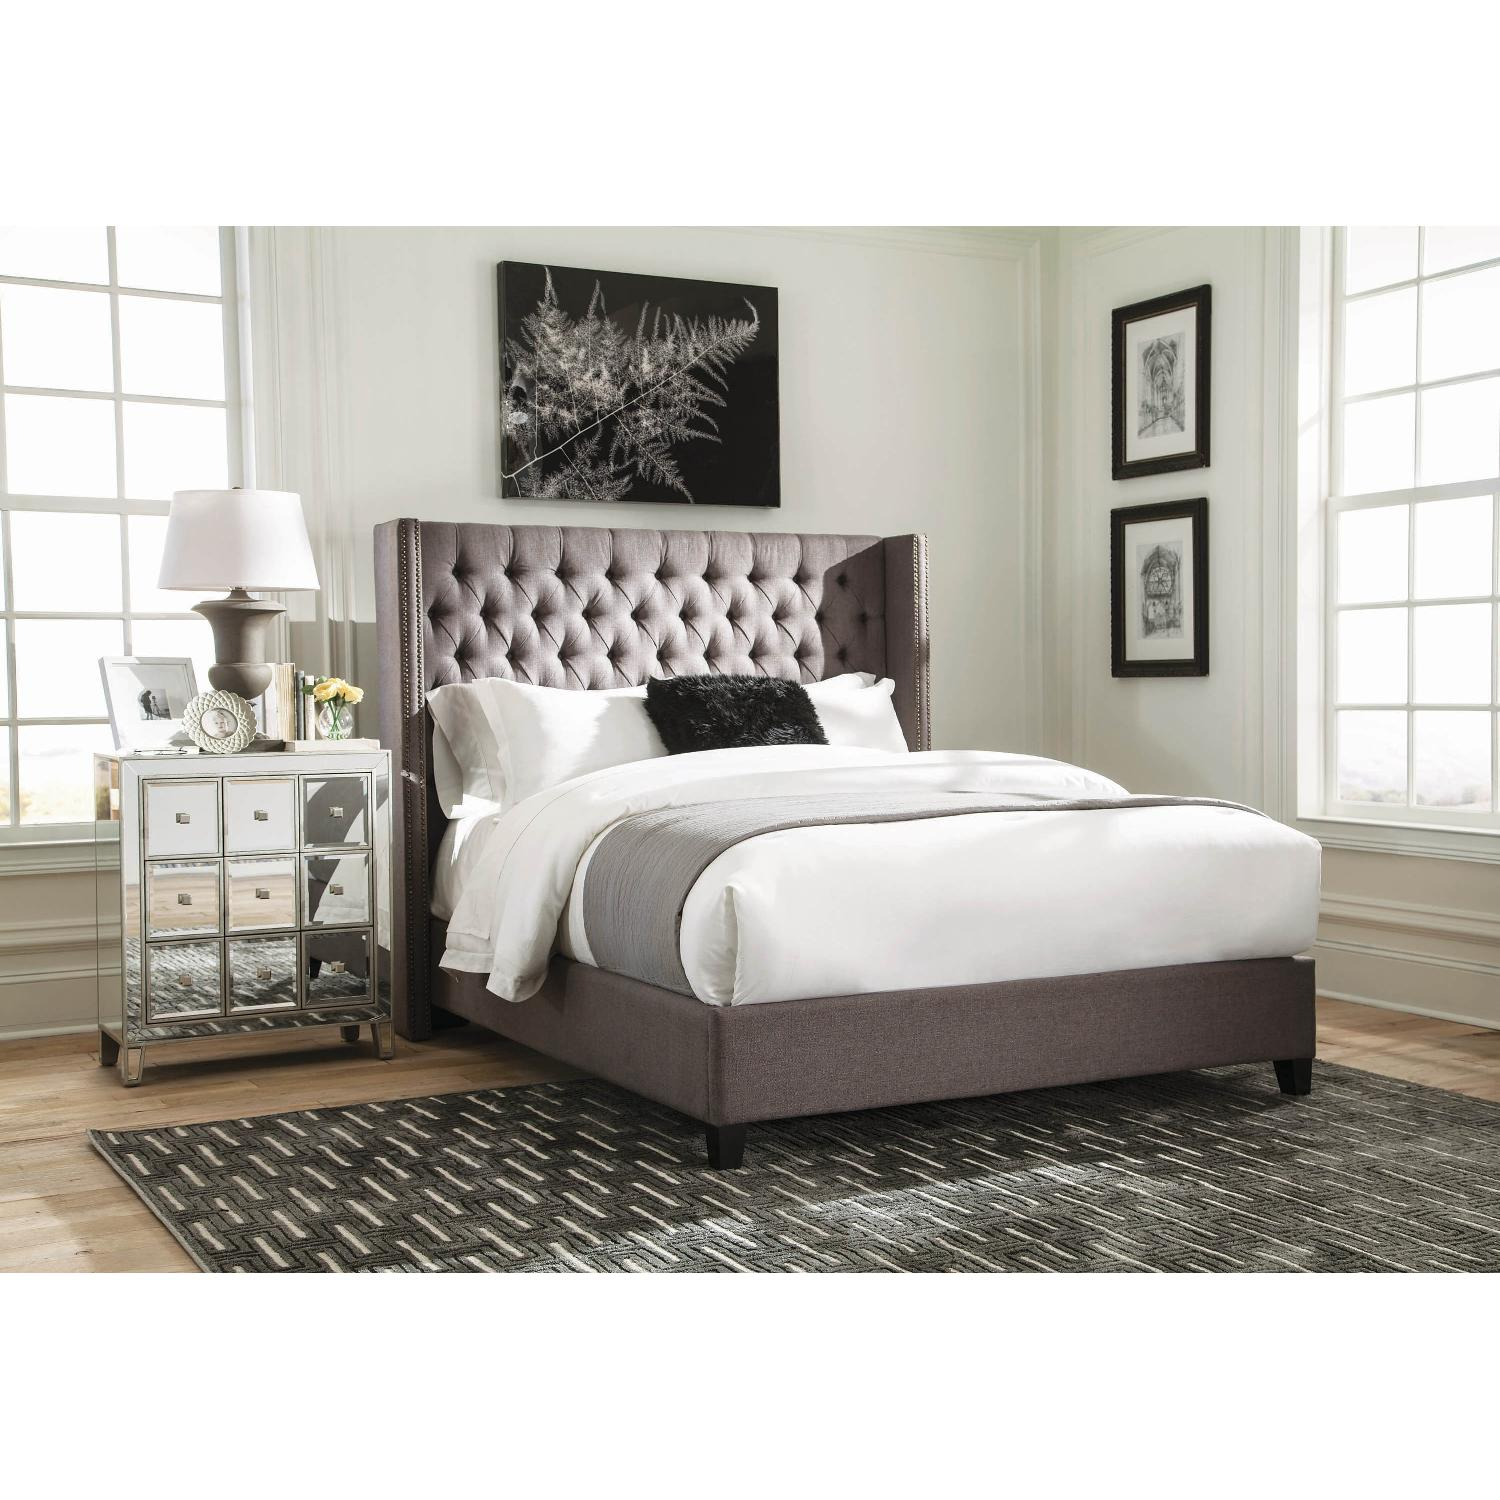 Modern Demi Wing Twin Bed in Grey w/ Nailhead Accent - image-1